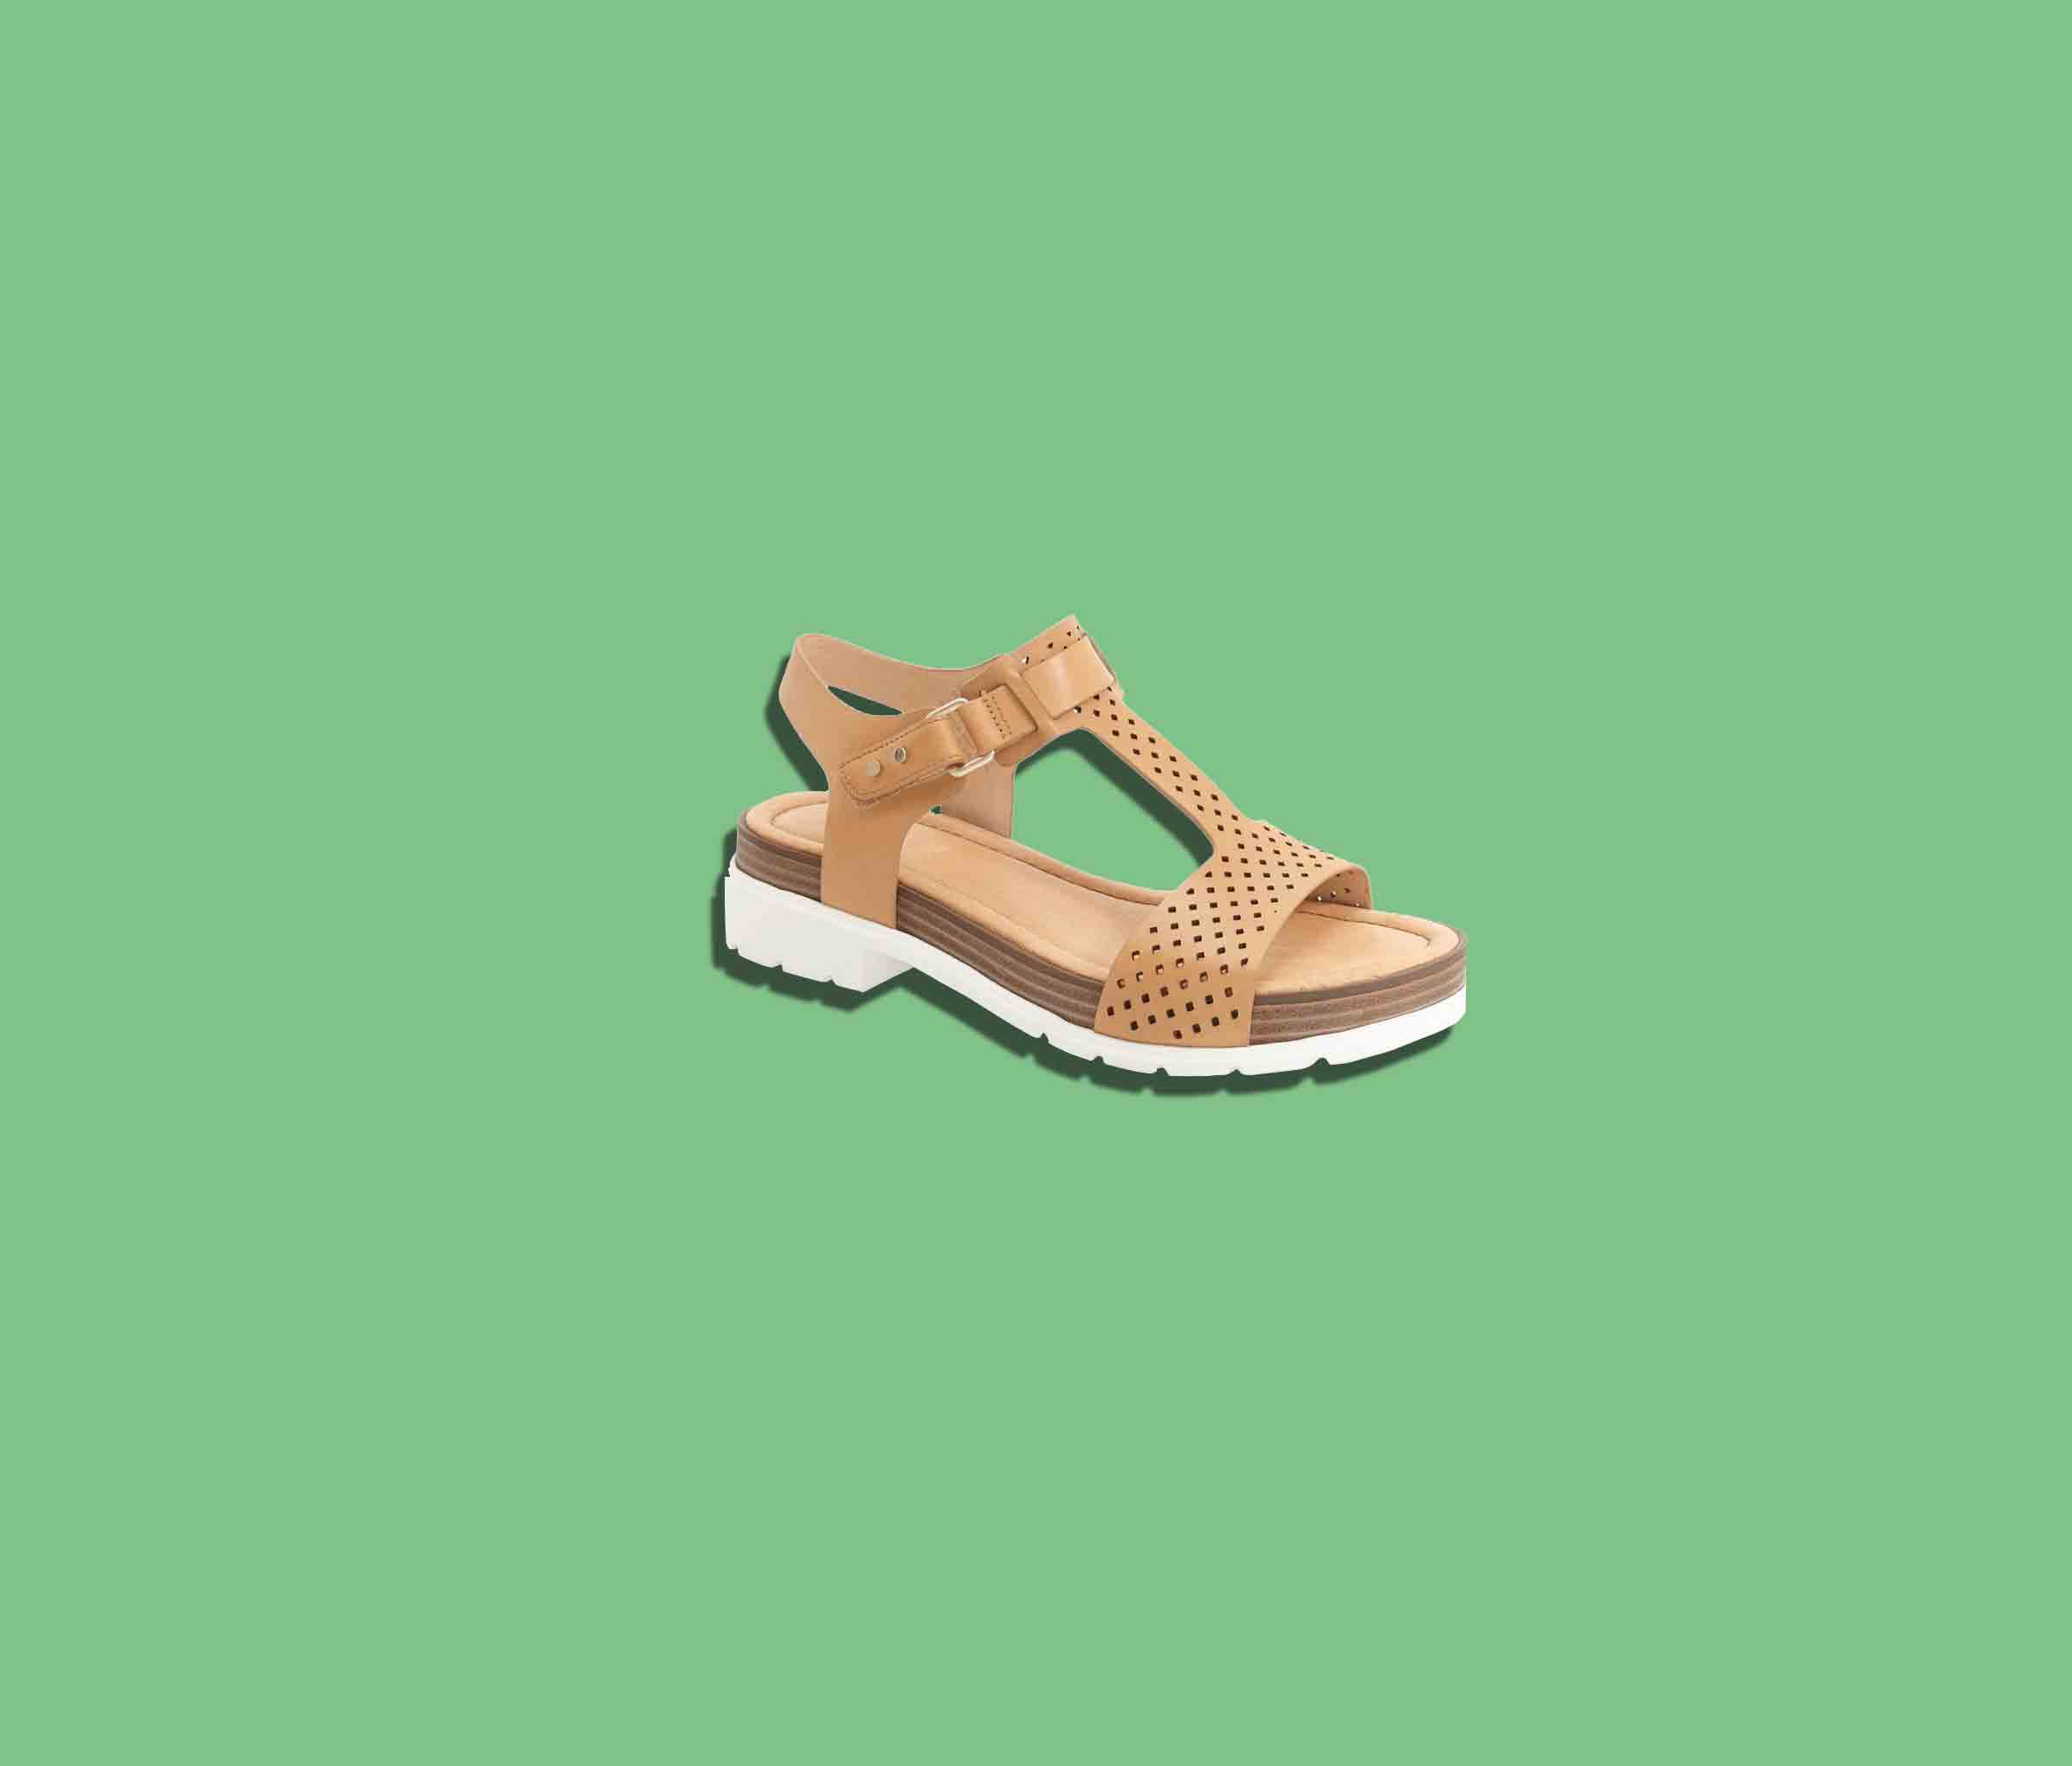 The Cutest Comfort Sandals on Sale at Nordstrom Right Now